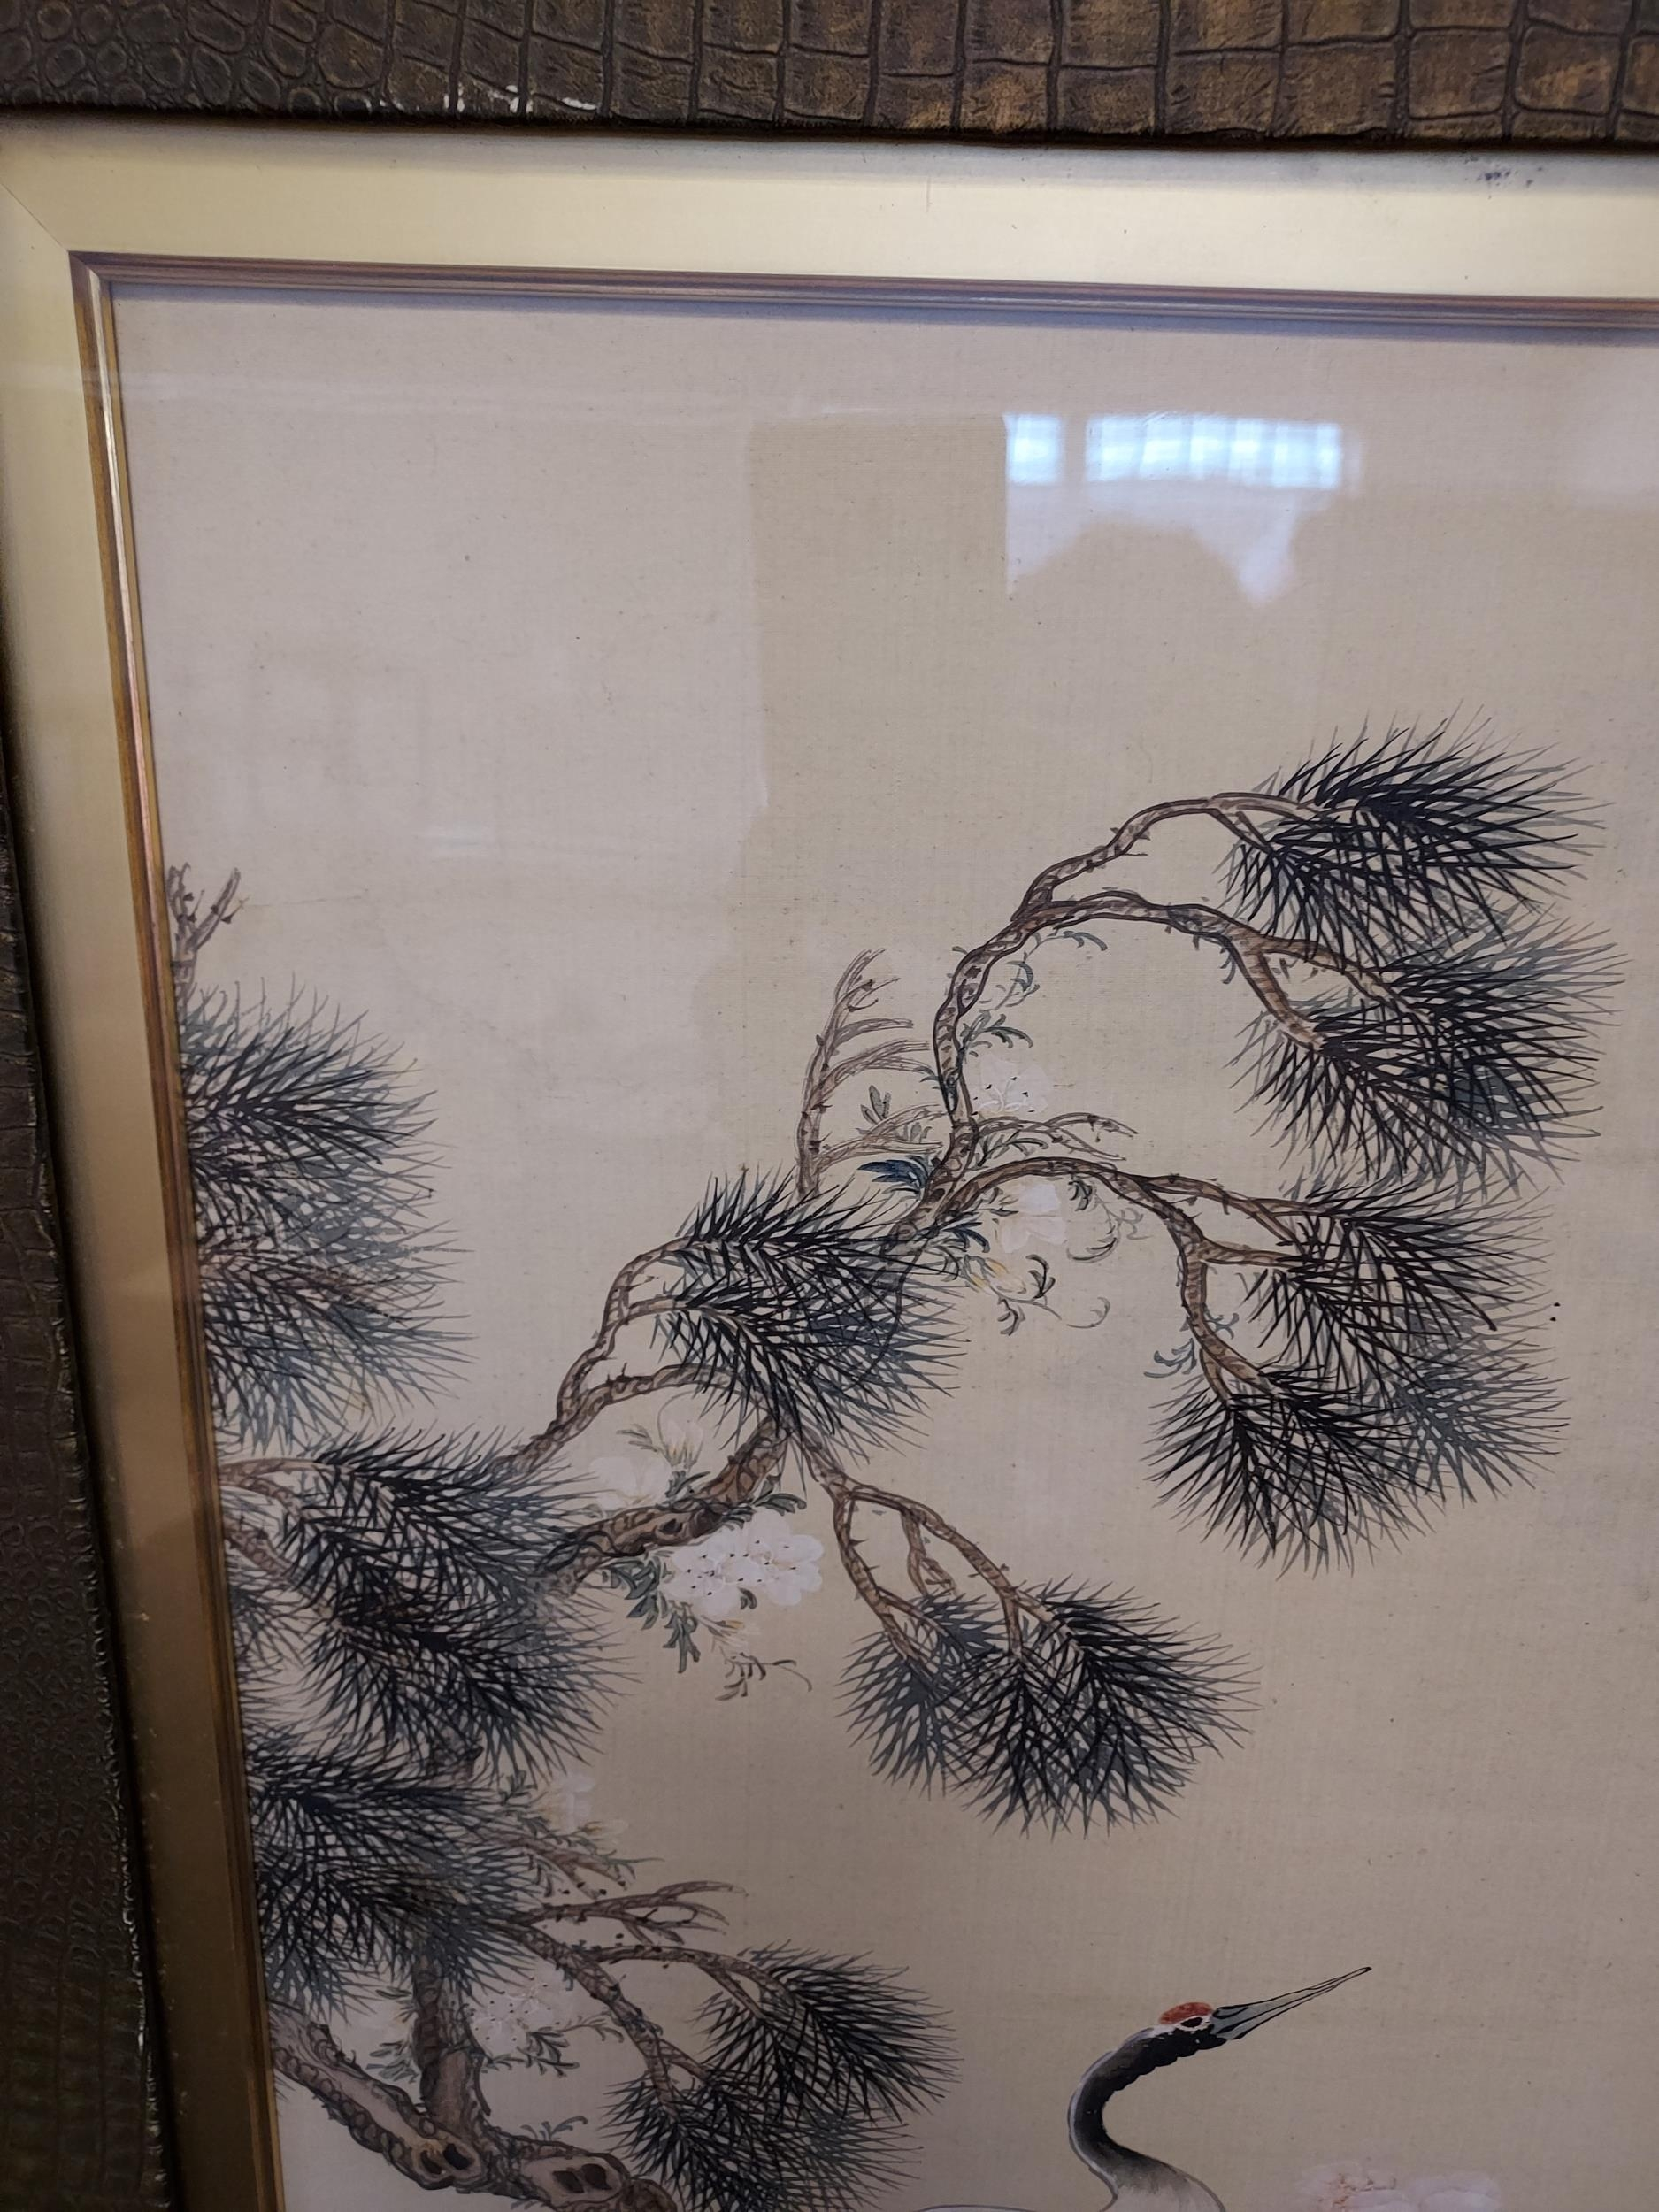 A Large 18th/ 19th century Chinese/ Japanese silk painting depicting cranes surrounded by tree and - Image 6 of 9